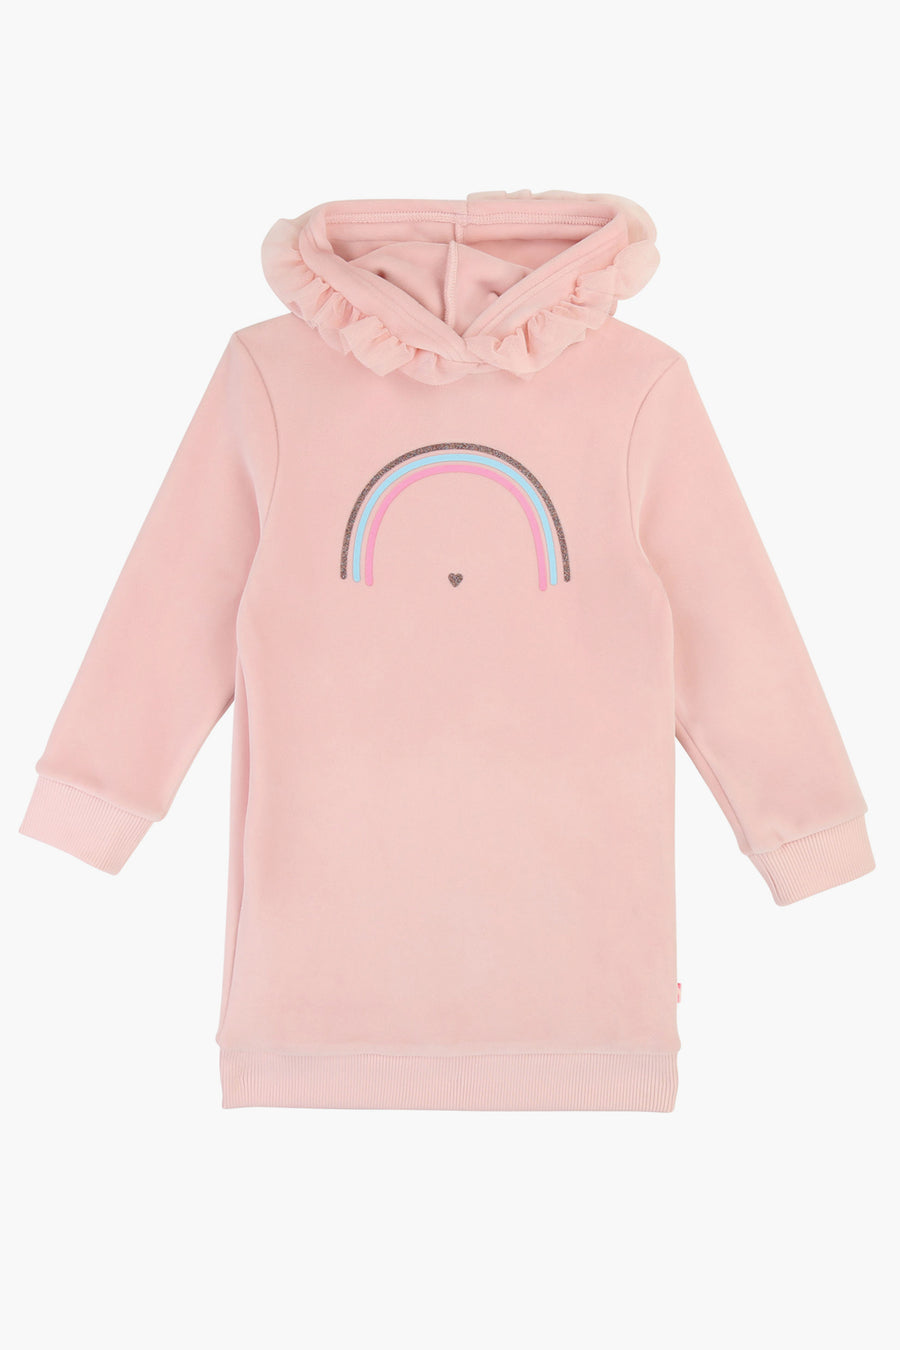 Billieblush Hoodie Rainbow Girls Dress